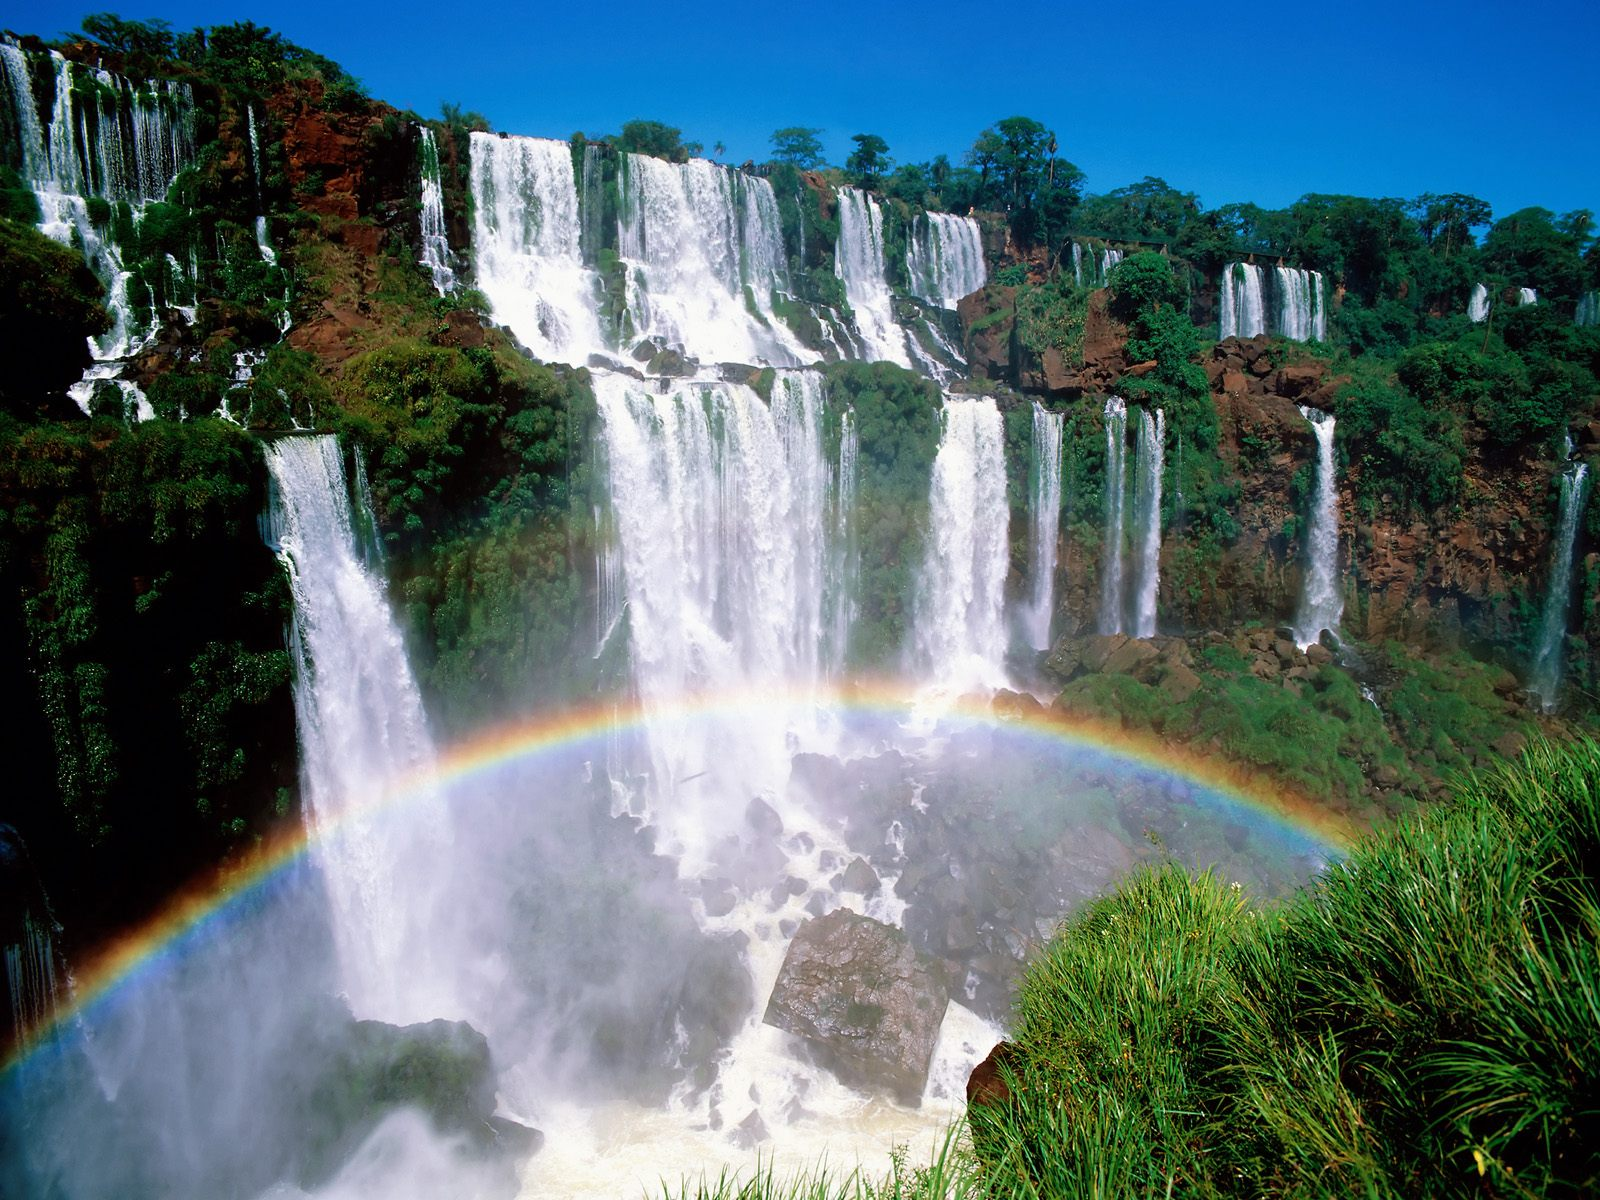 HQ Iguazu National Park Argentina Wallpaper   HQ Wallpapers 1600x1200